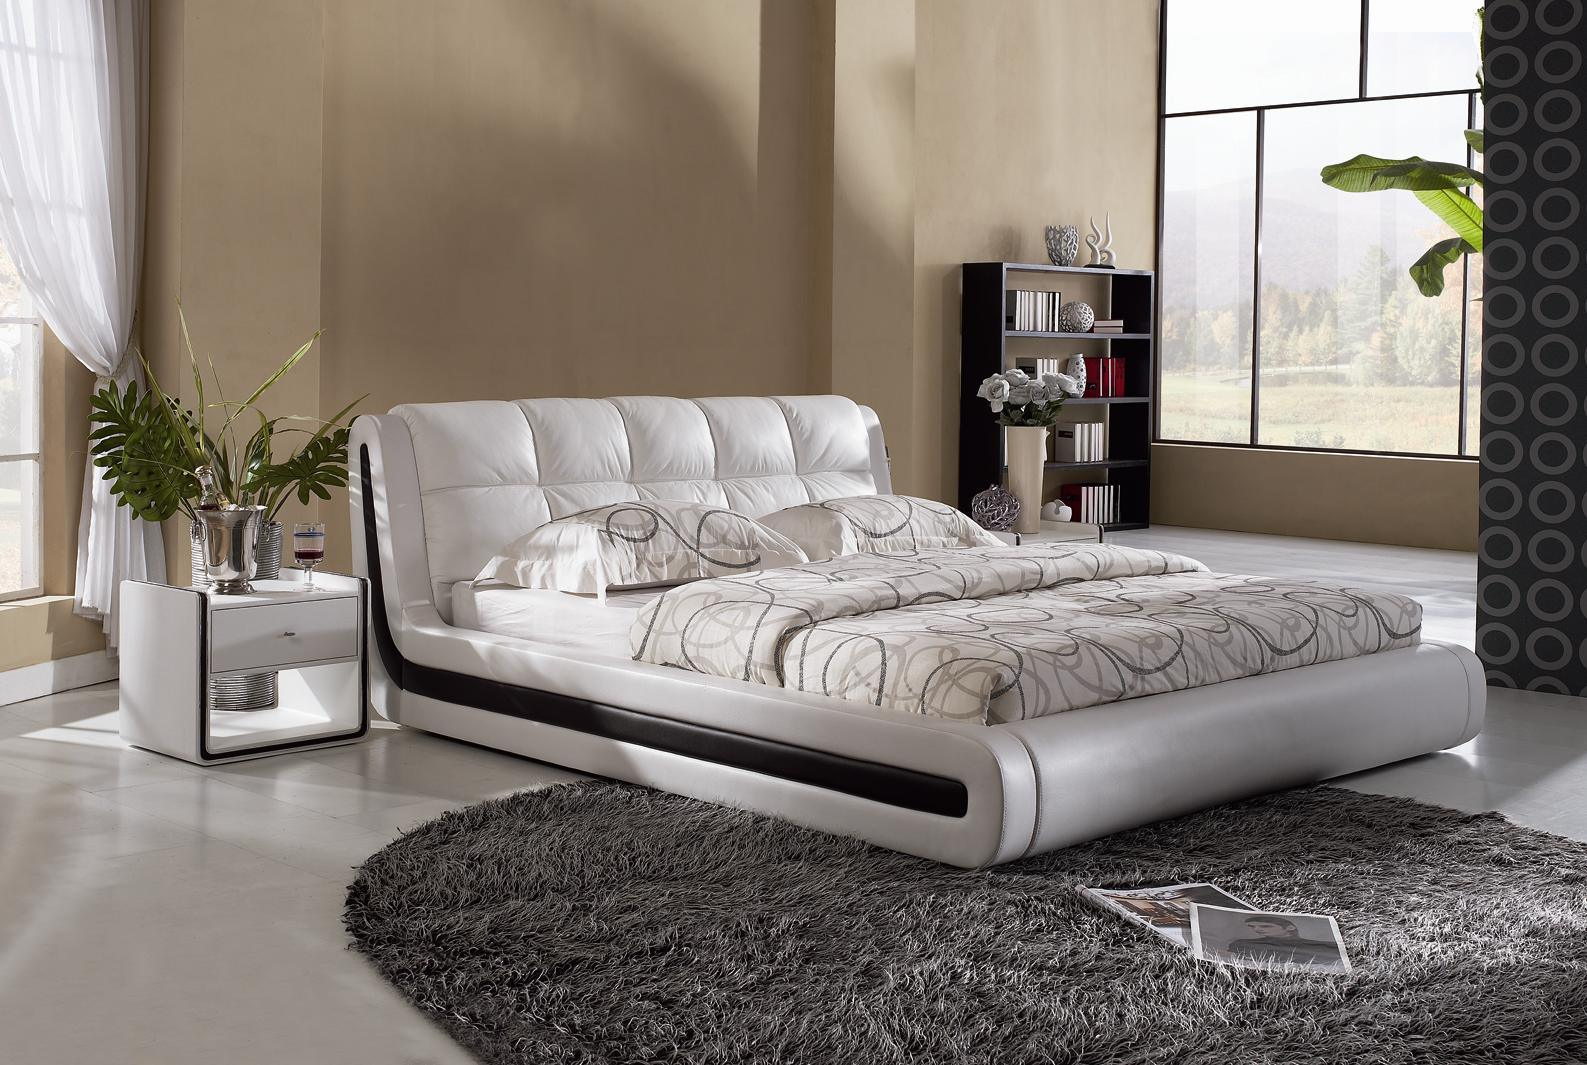 modern beds design pictures | Simple Home Decoration